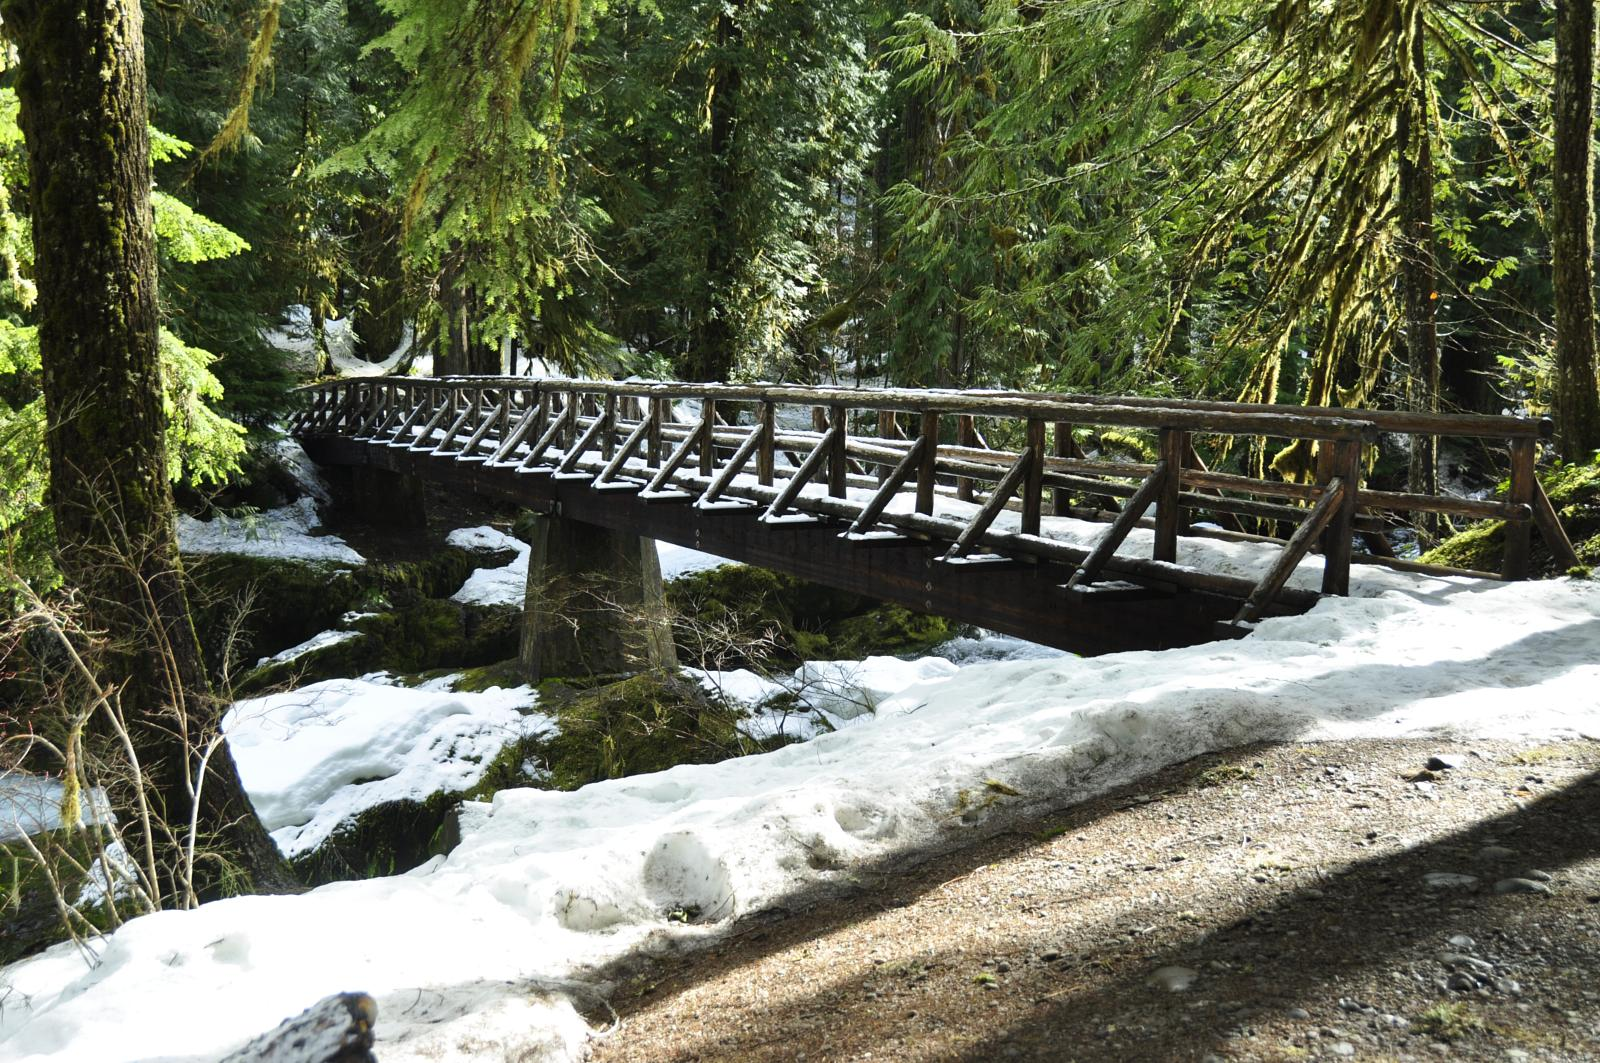 Wikiloc - Photo of Bagby Hot Springs Trail, near Estacada, Oregon (2/2)